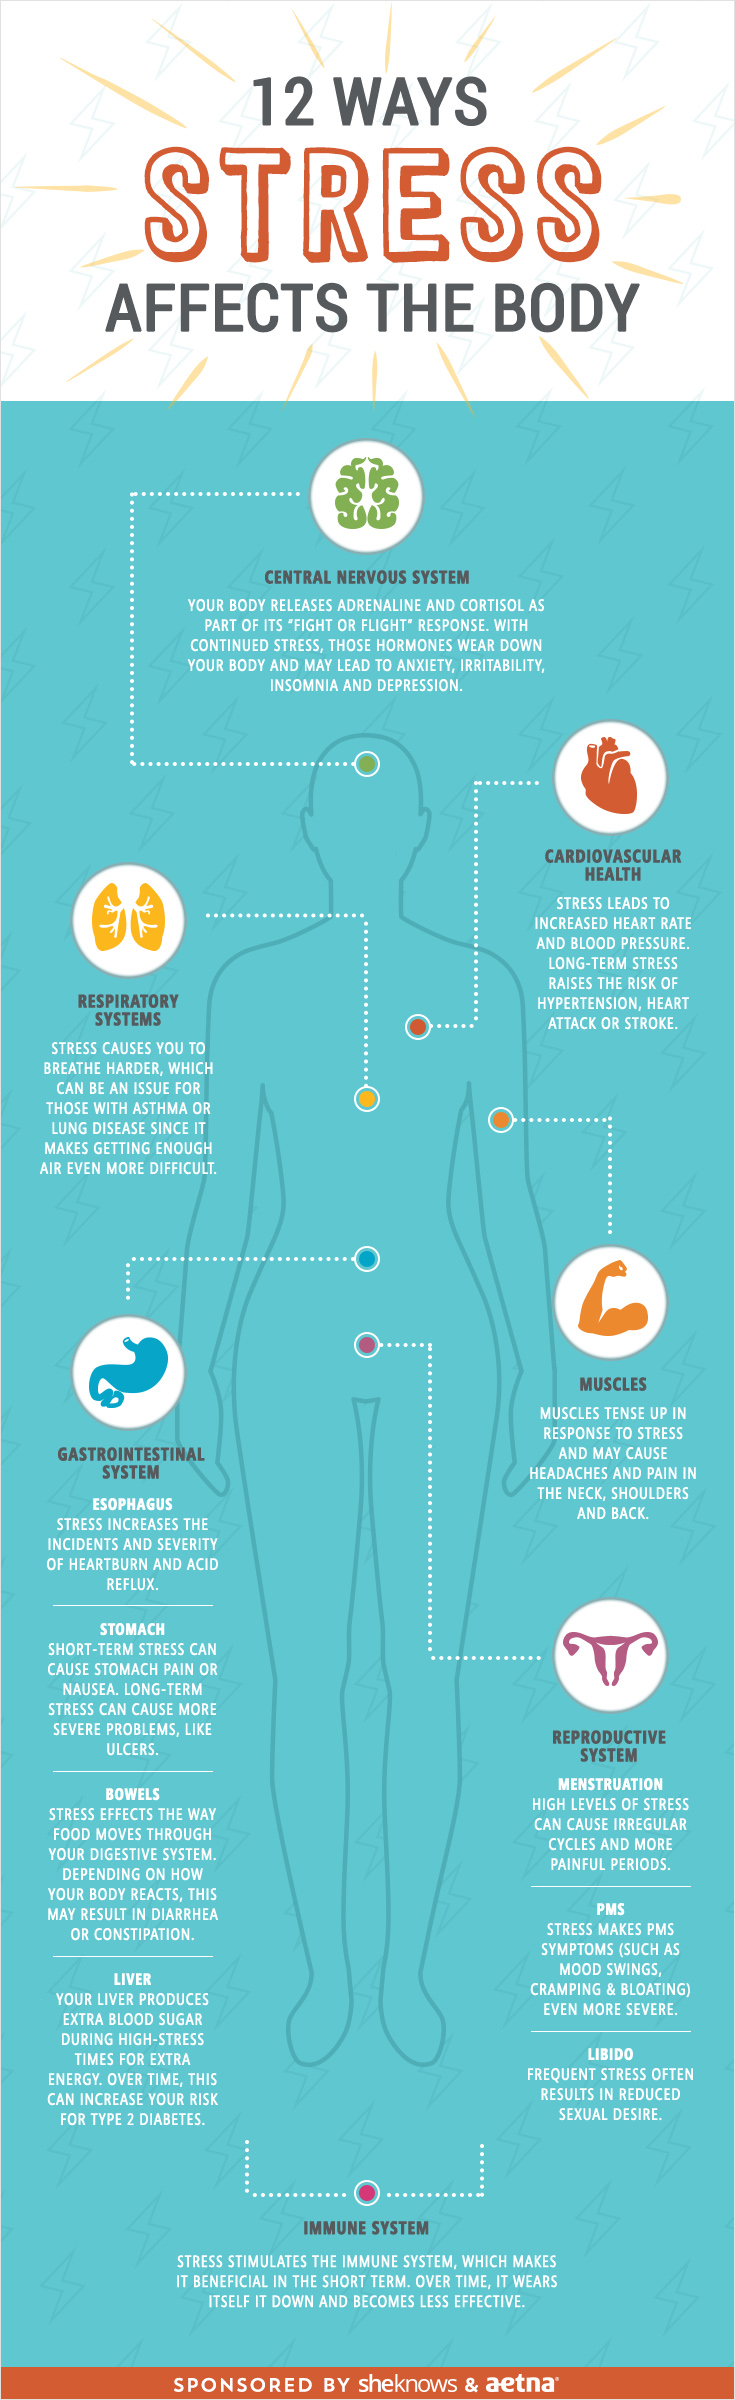 how-stress-effects-the-body-infographic